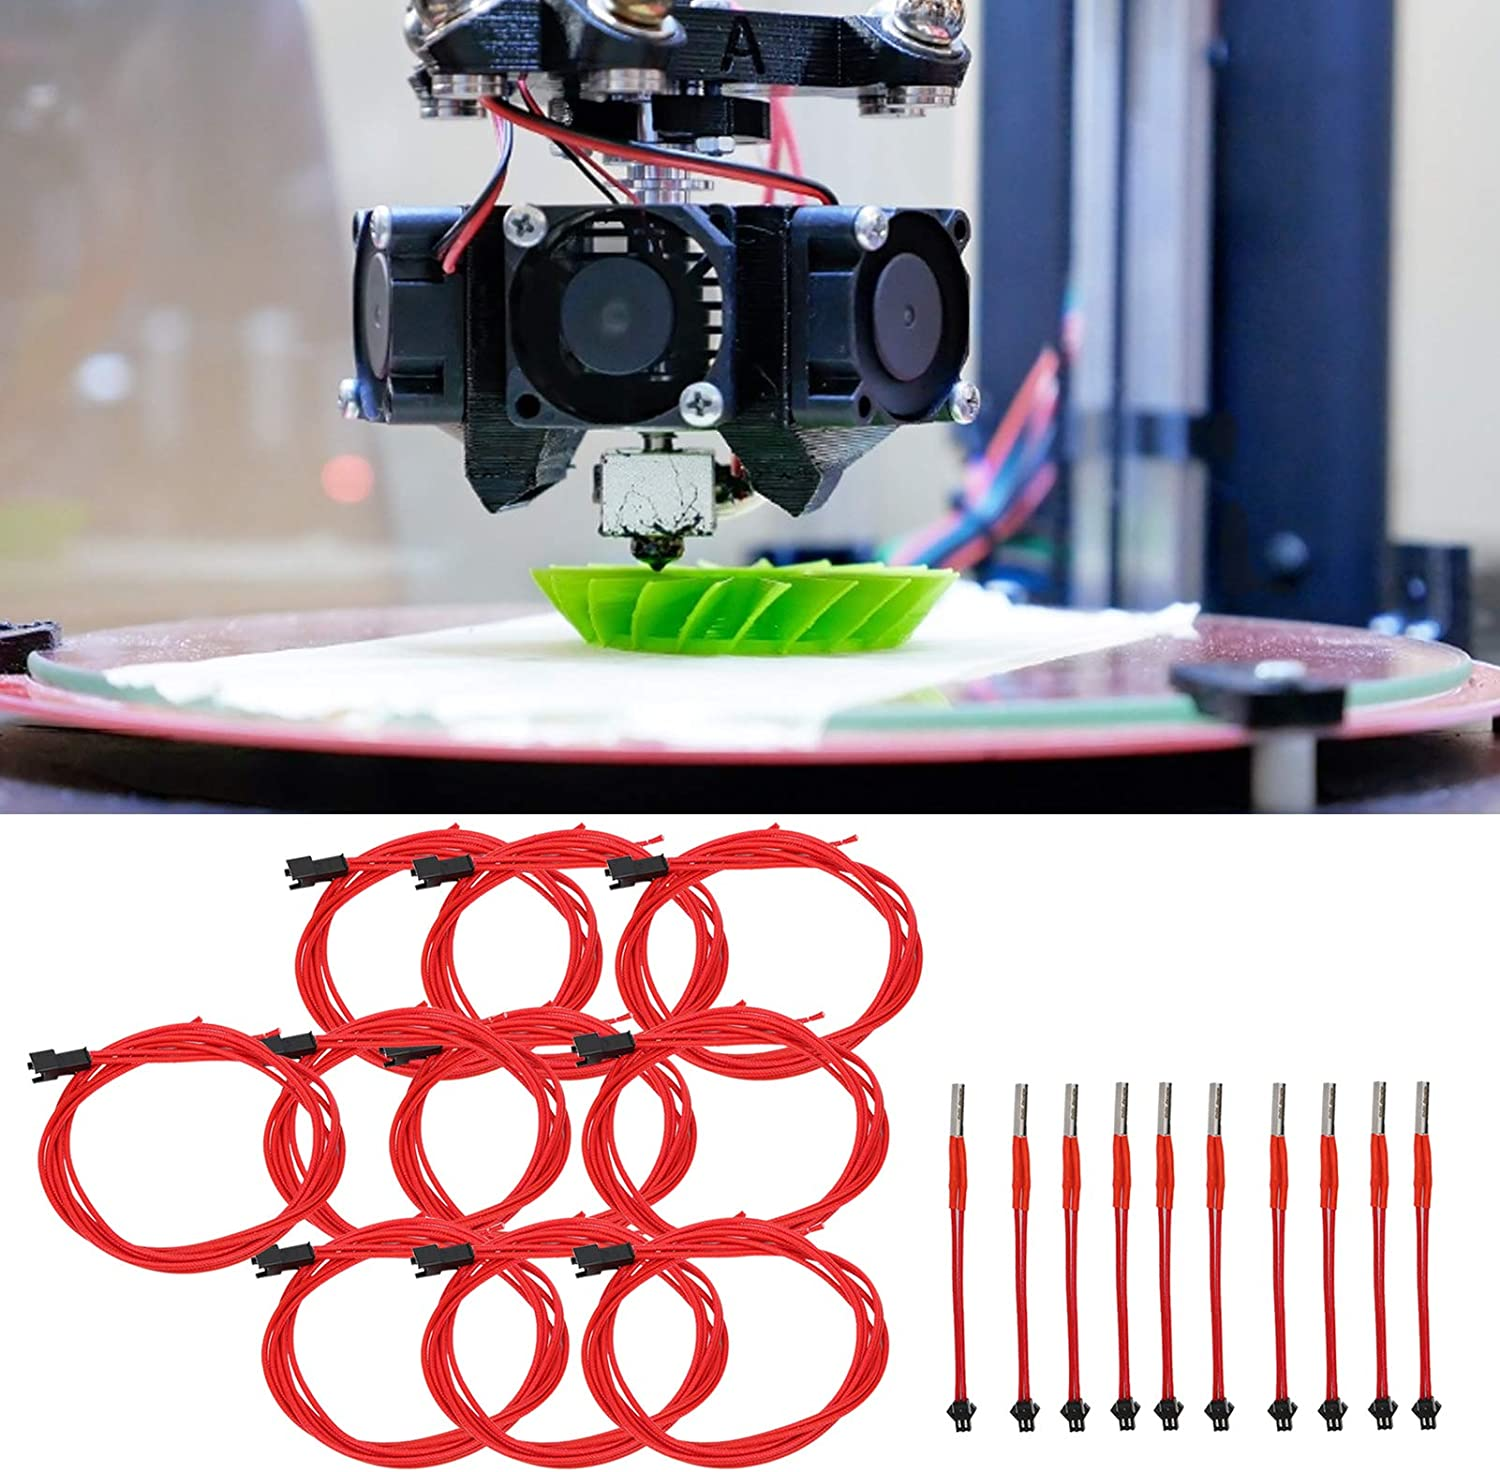 Walfront 620 Cartridge Heater,3D Printer Heating Rod with Terminal 12V 40W//24V 40W Fit 3D Printer 12V,40W Pack 5